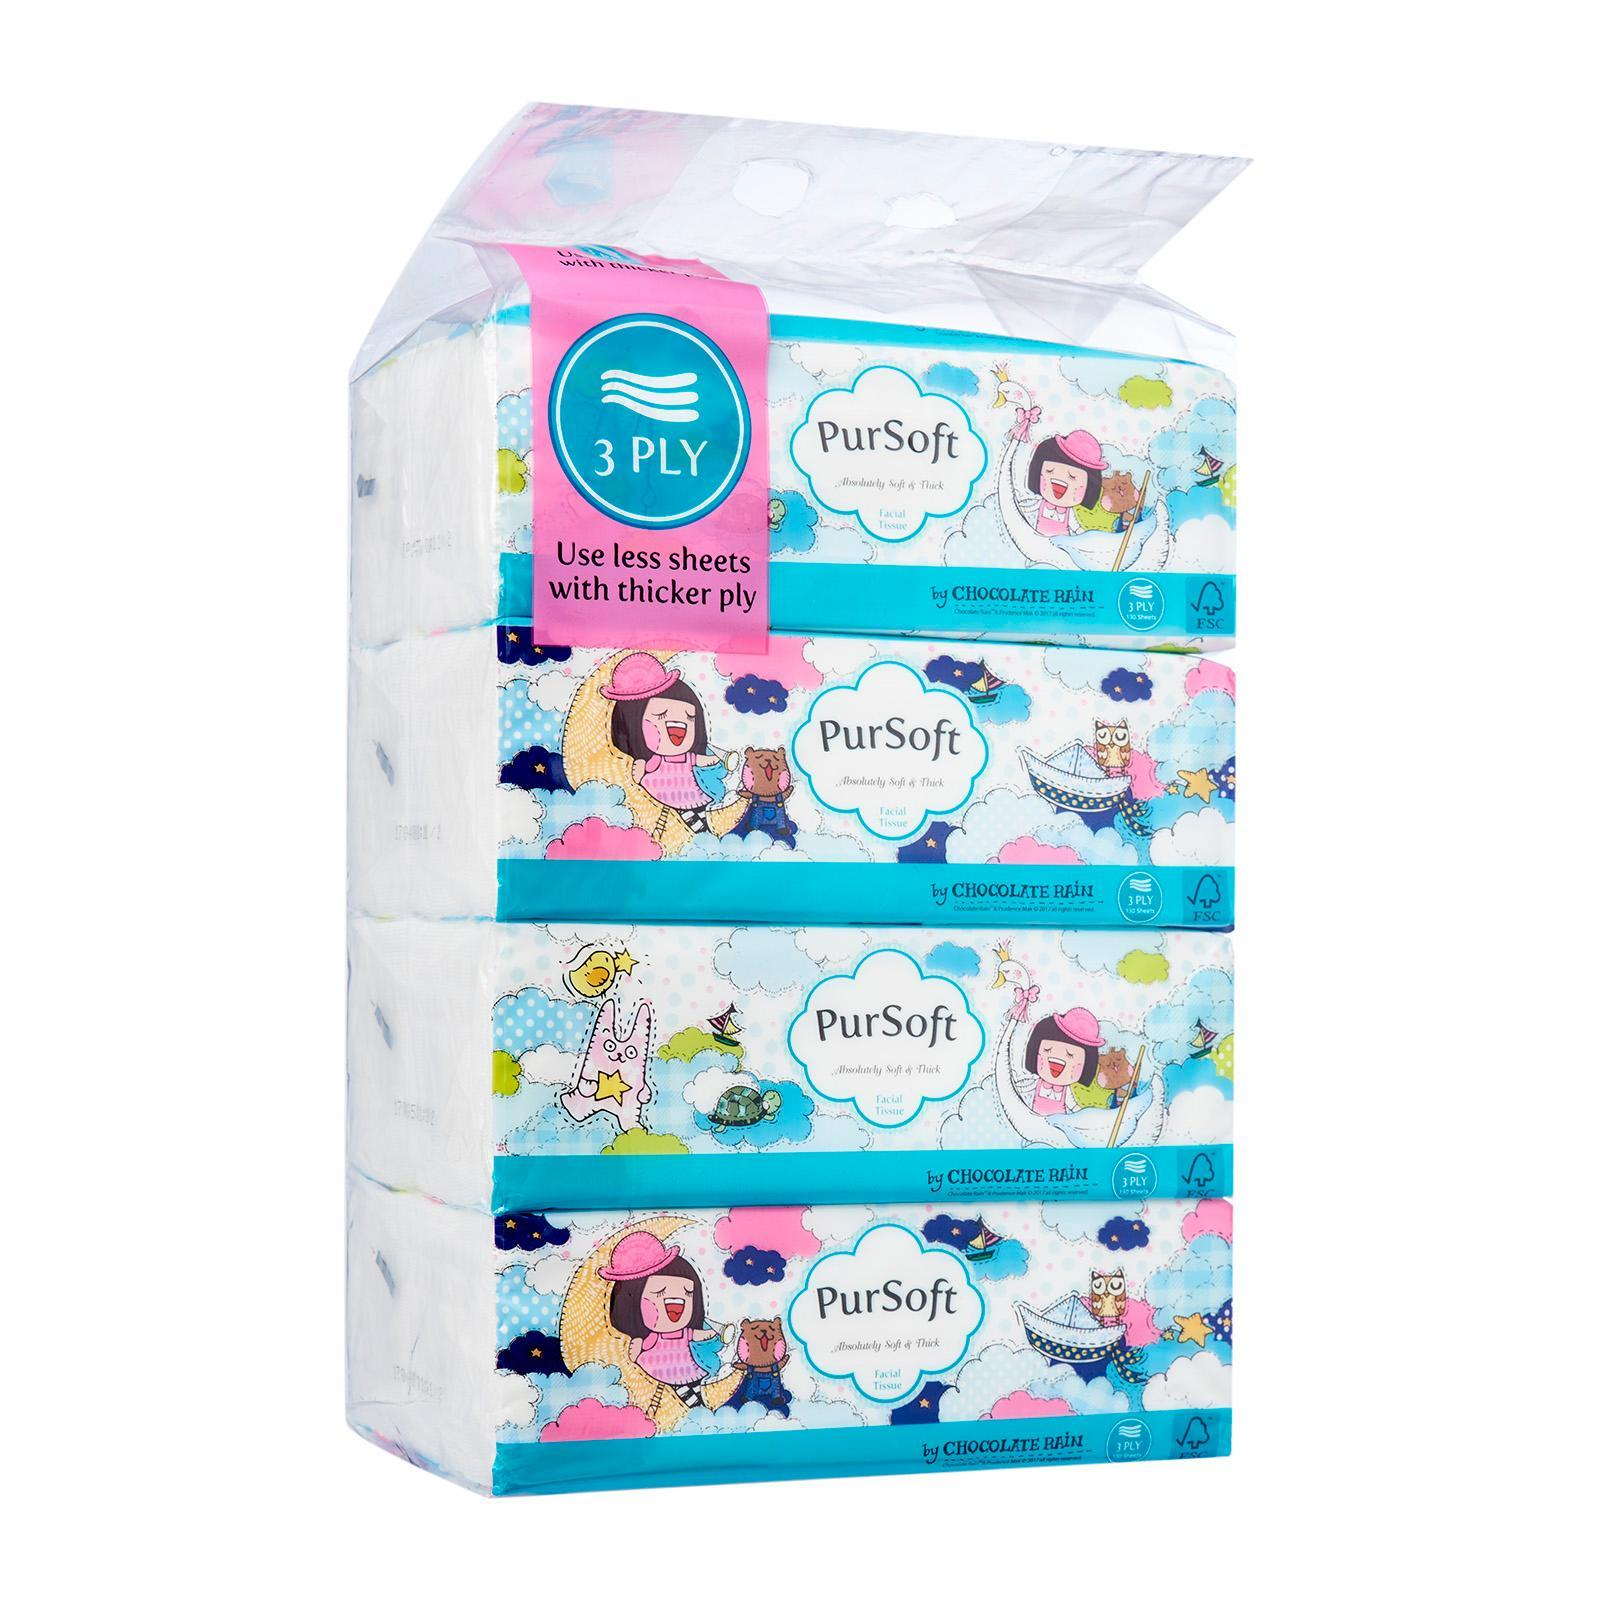 PurSoft Chocolate Rain Outdoor 3-Ply Facial Tissue - Soft Pack